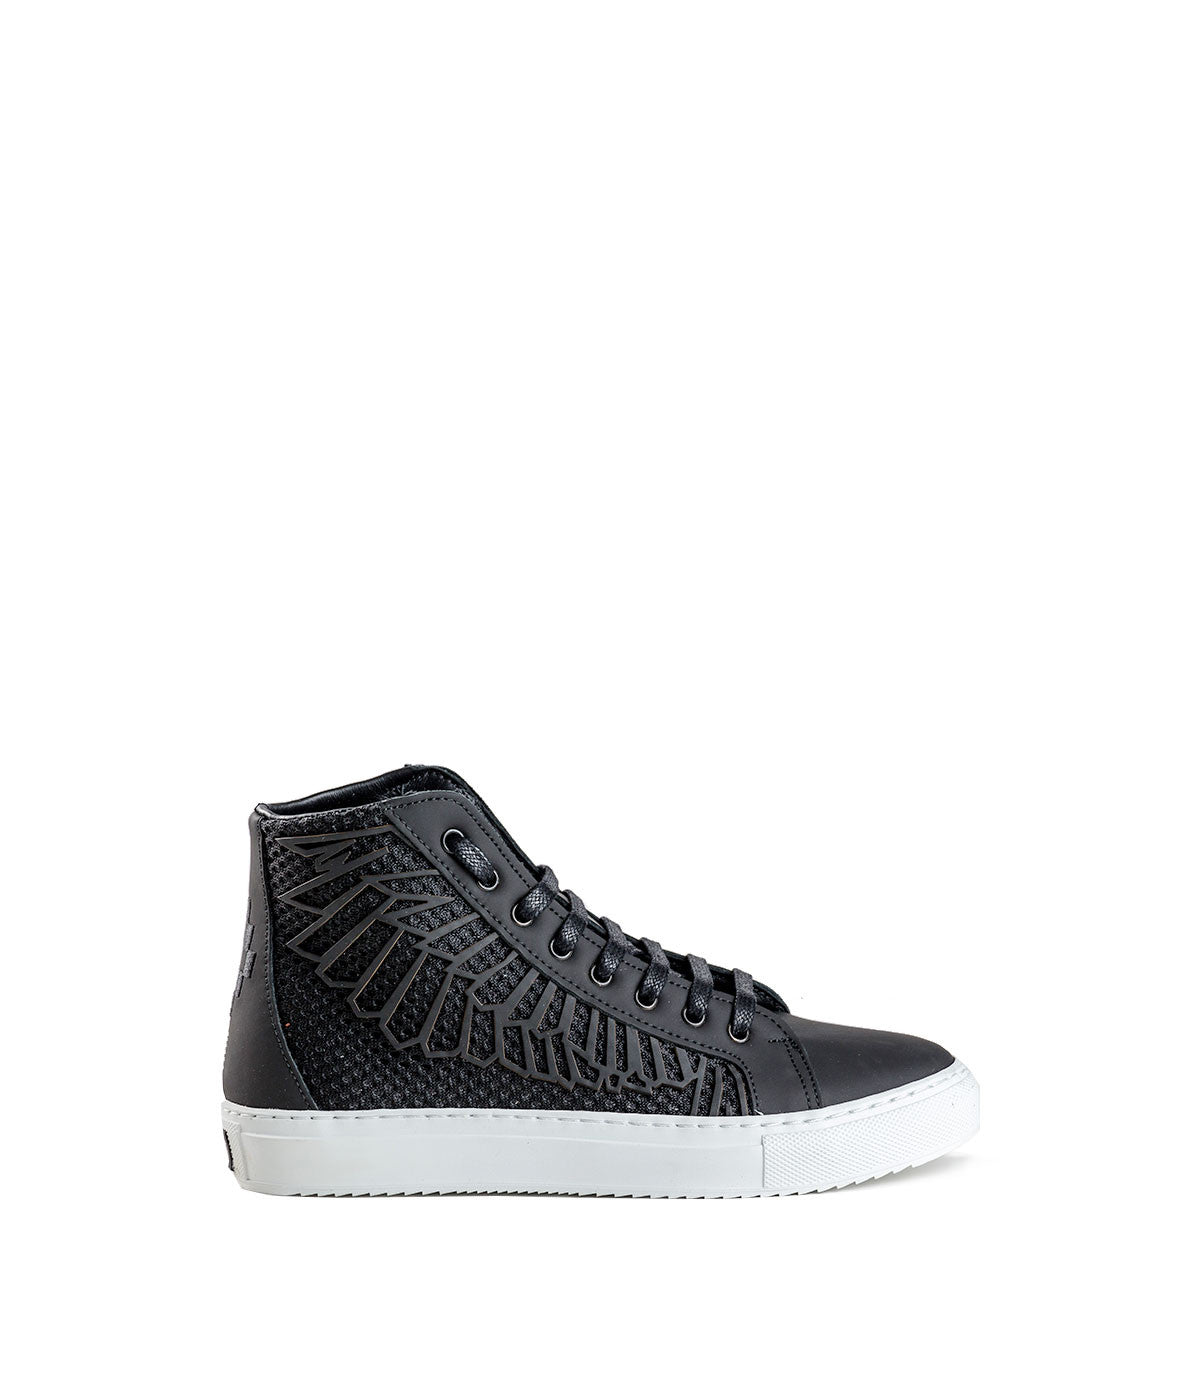 Black Wings Hig-Top Sneakers